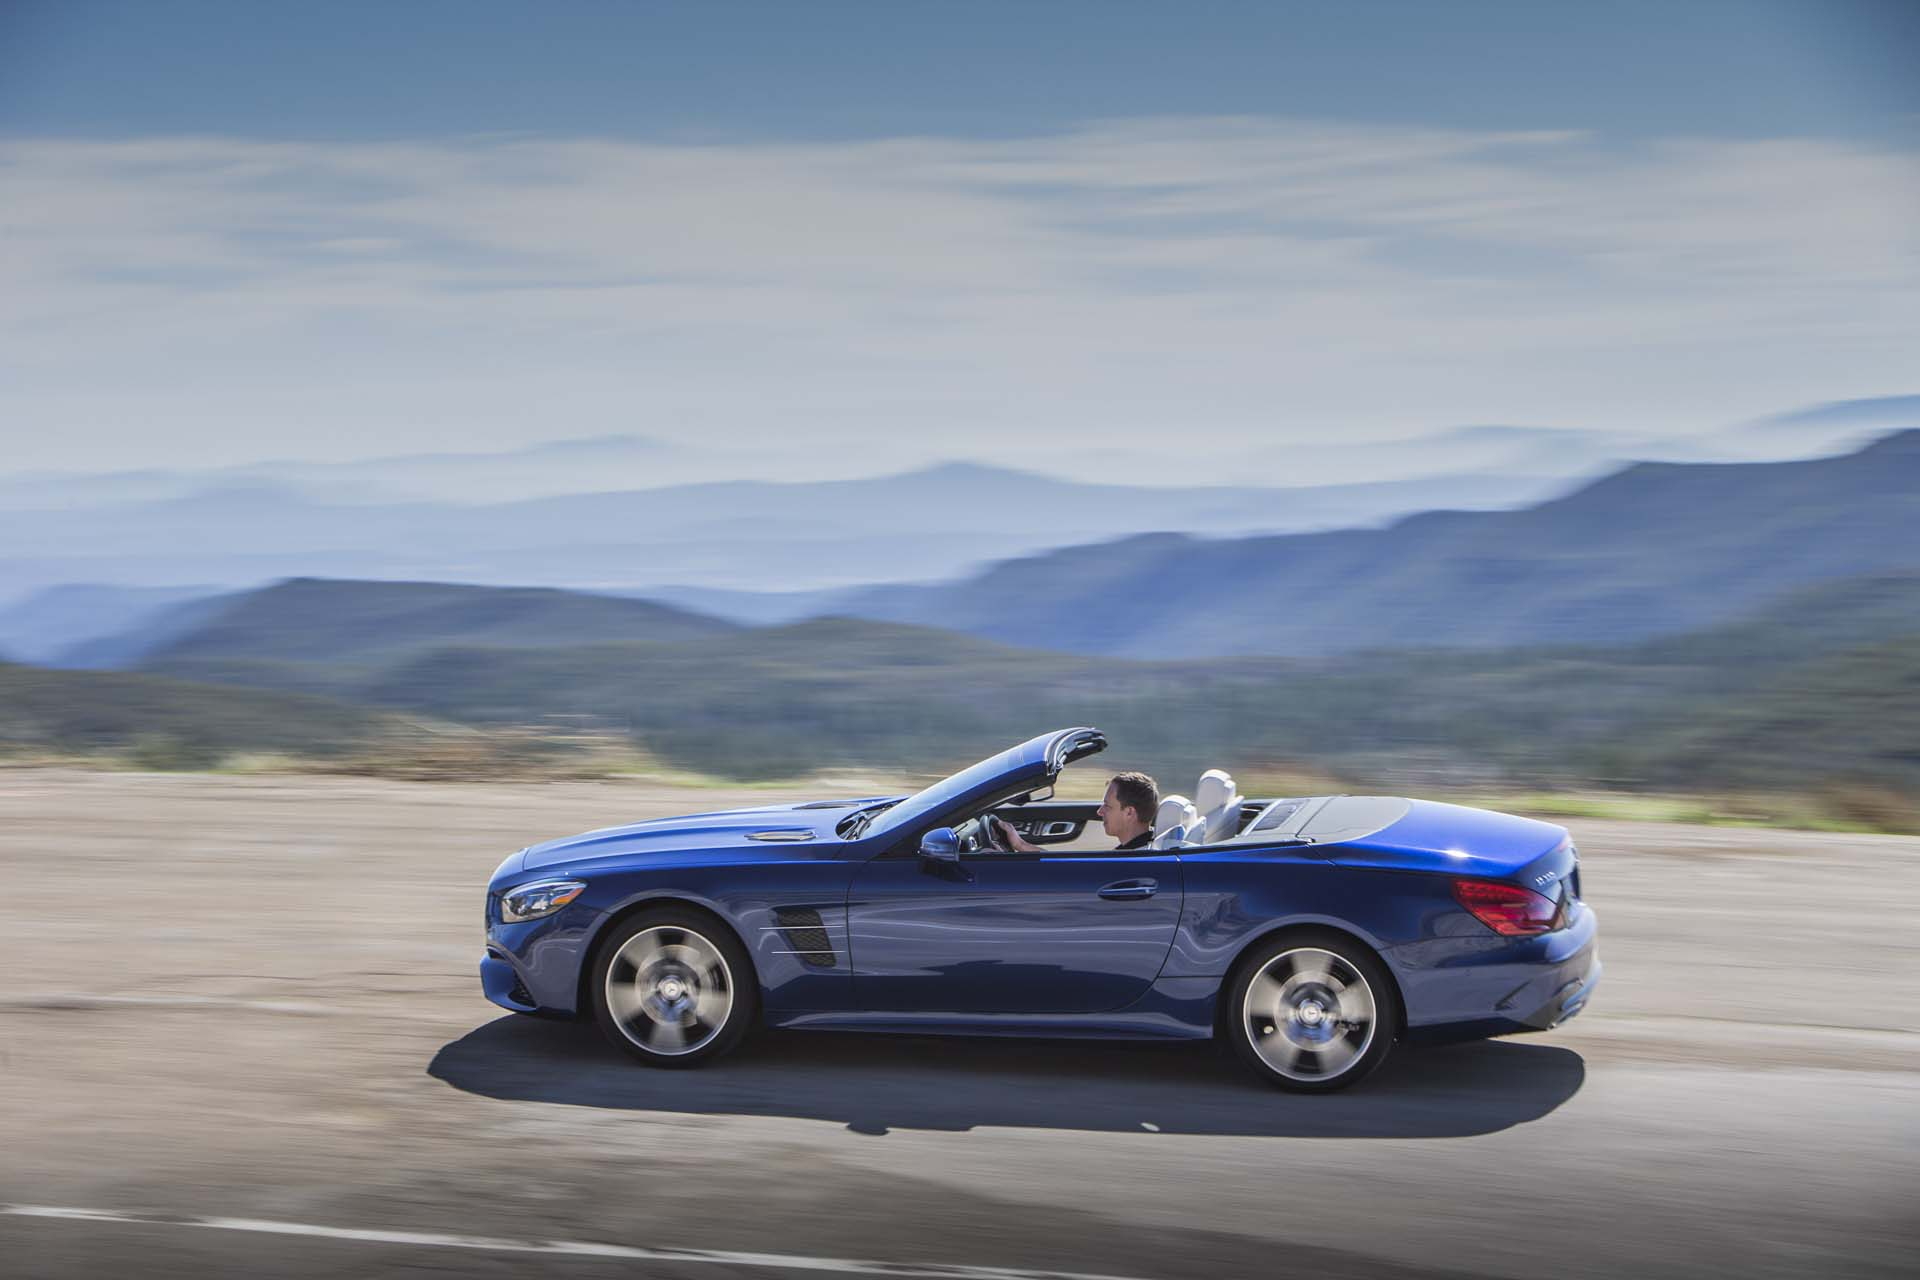 1996 Mercedes Benz SL Class Review Ratings Specs Prices and s The Car Connection